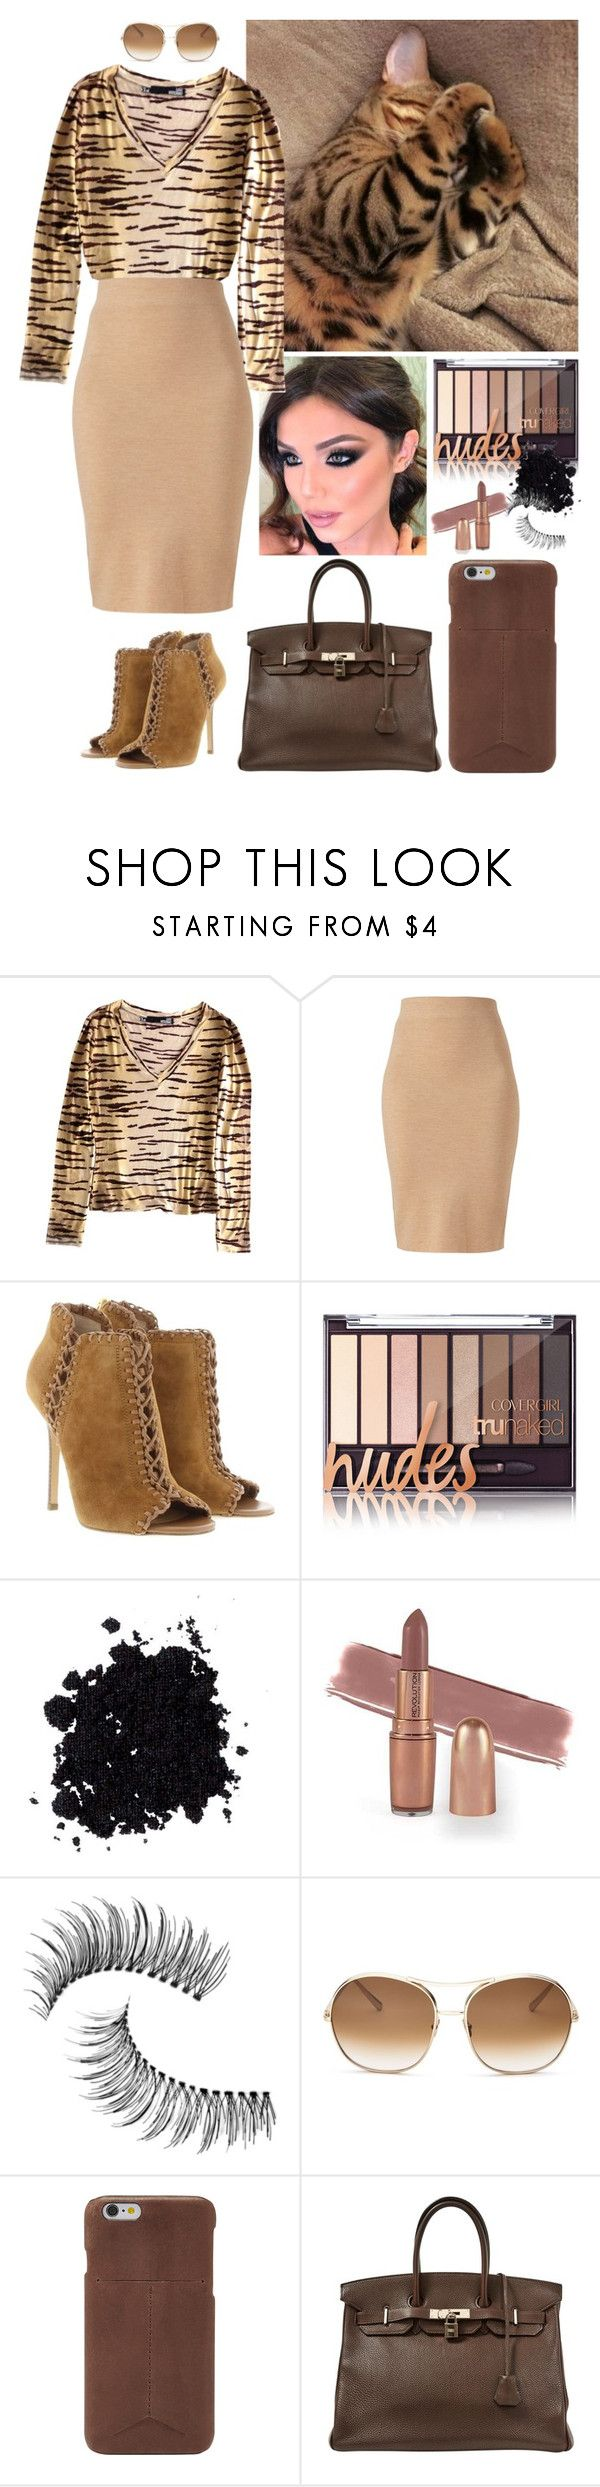 """""""Animal Inspired!"""" by annacastrolima ❤ liked on Polyvore featuring GET LOST, Winser London, Michael Kors, Trish McEvoy, Chloé, FOSSIL and Hermès"""